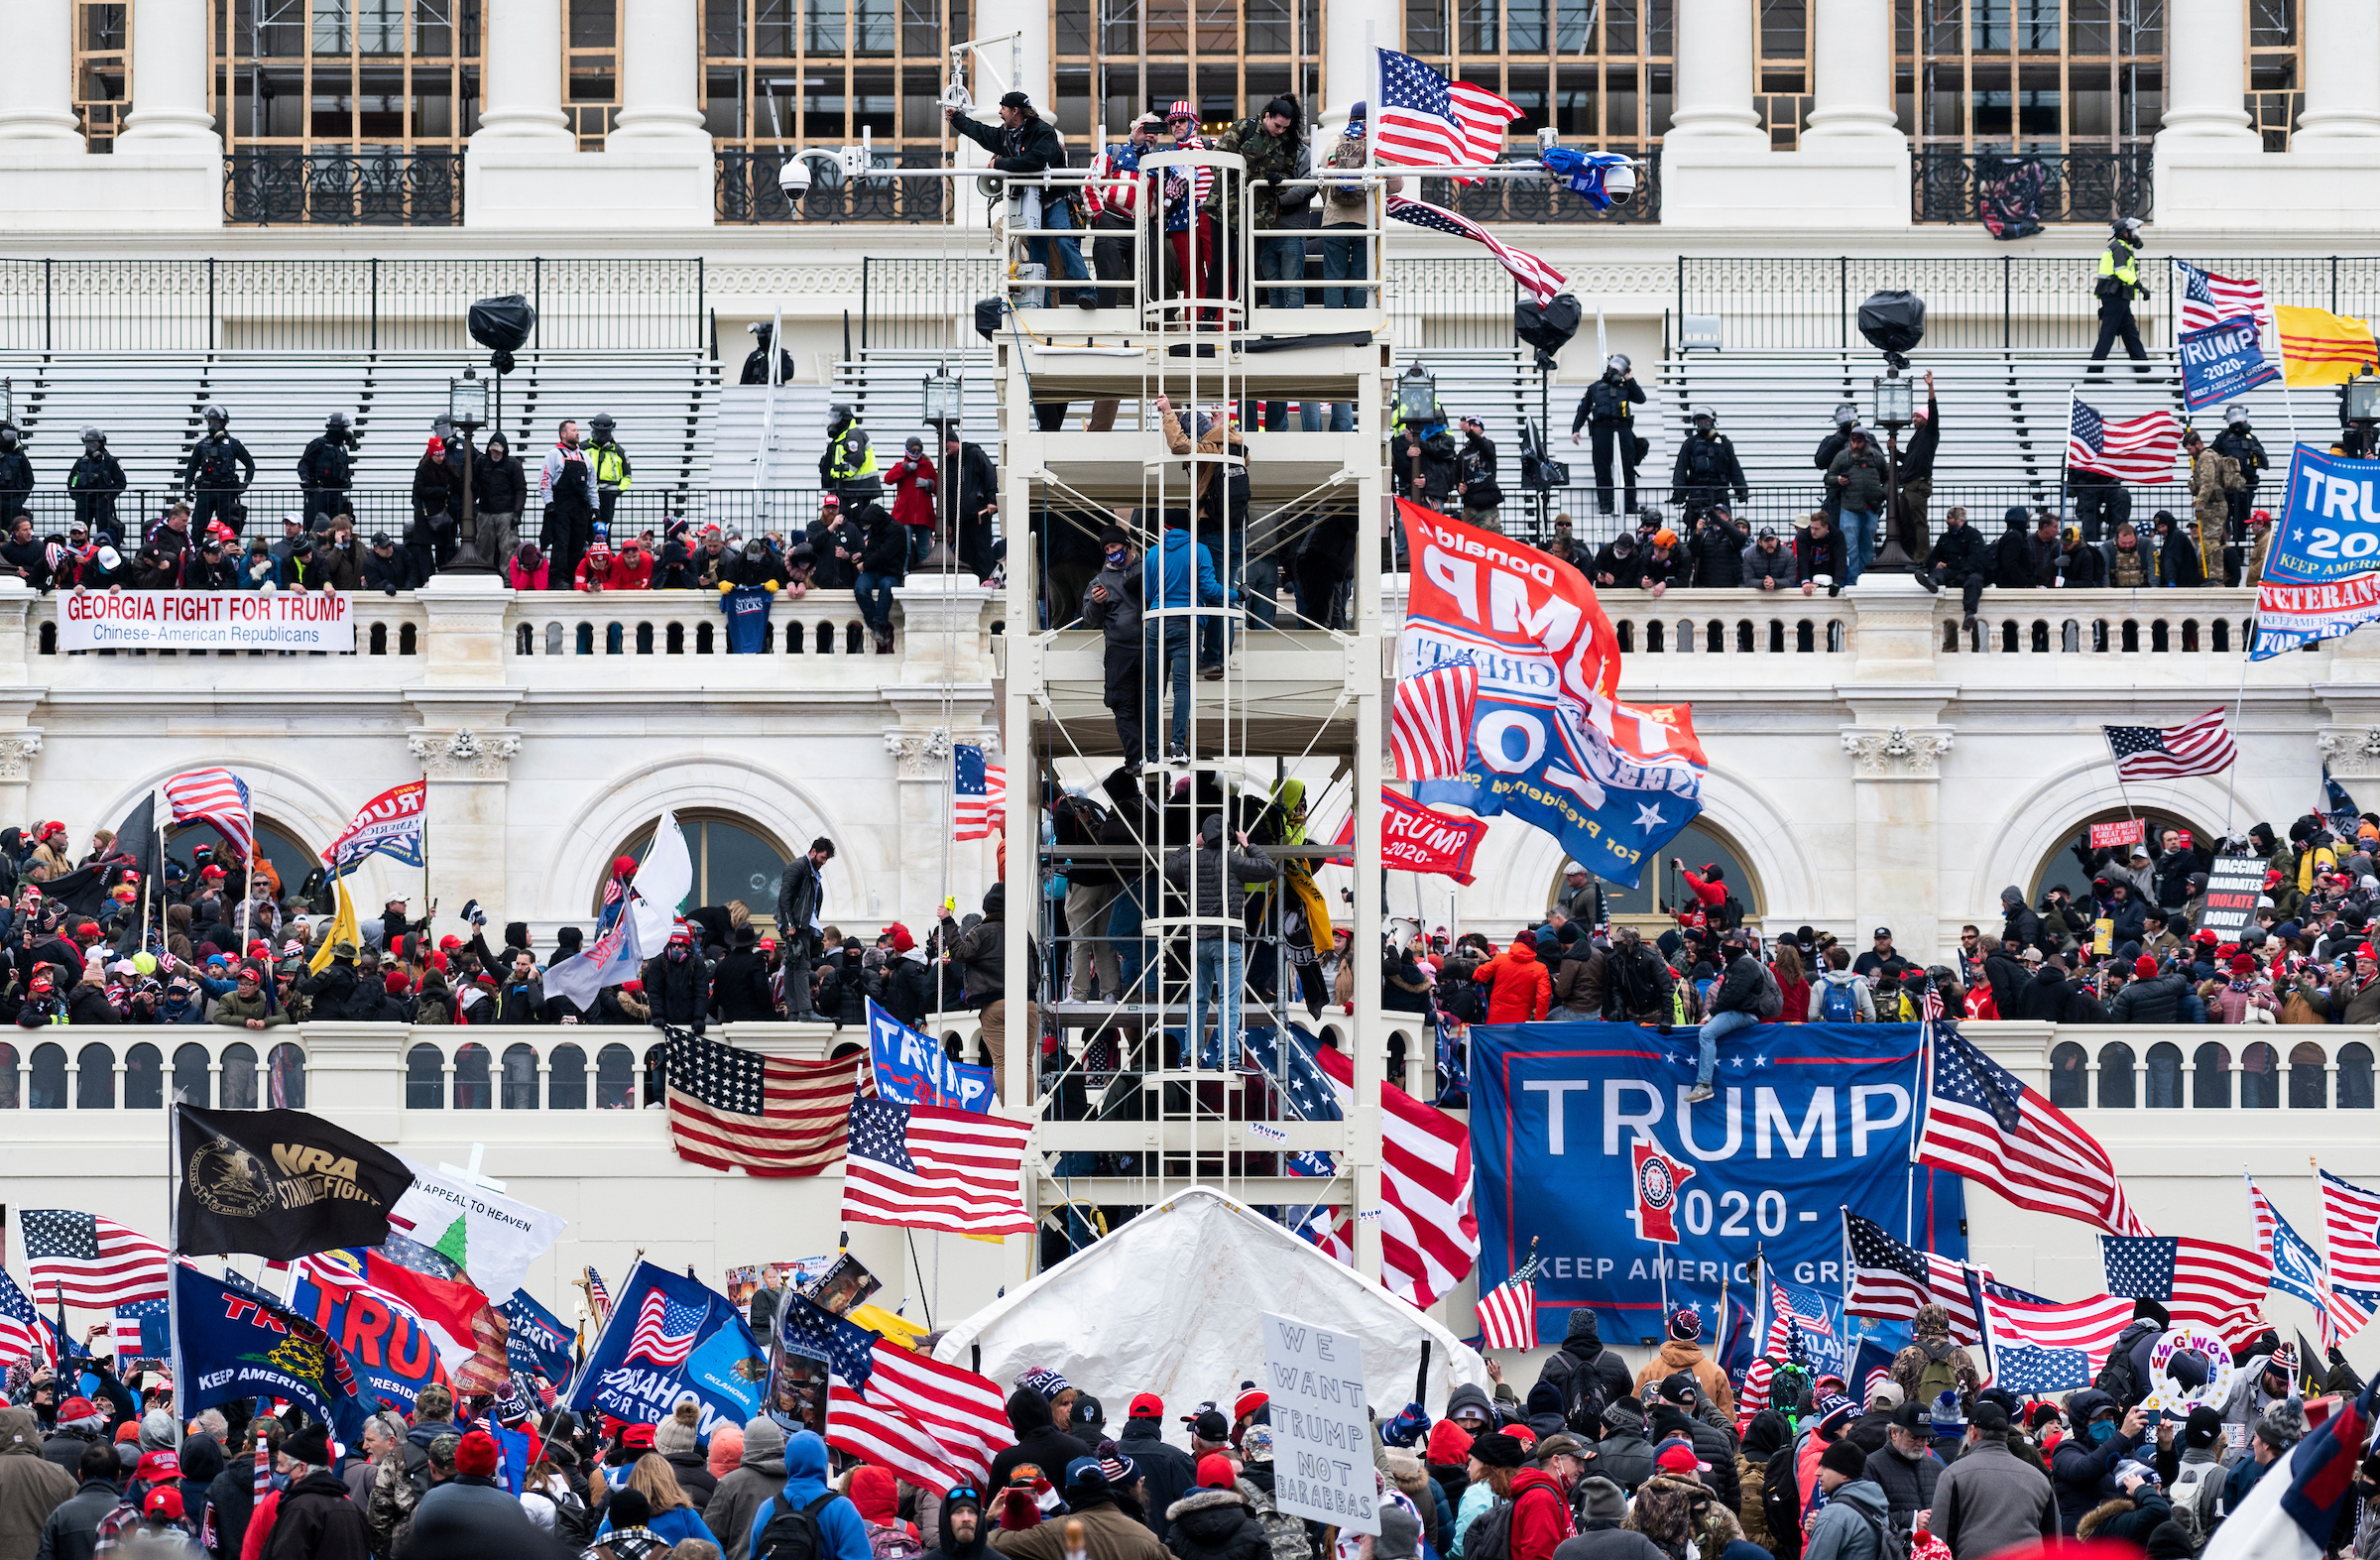 Capitol riot: What our Hill reporters and photographers saw - Roll Call